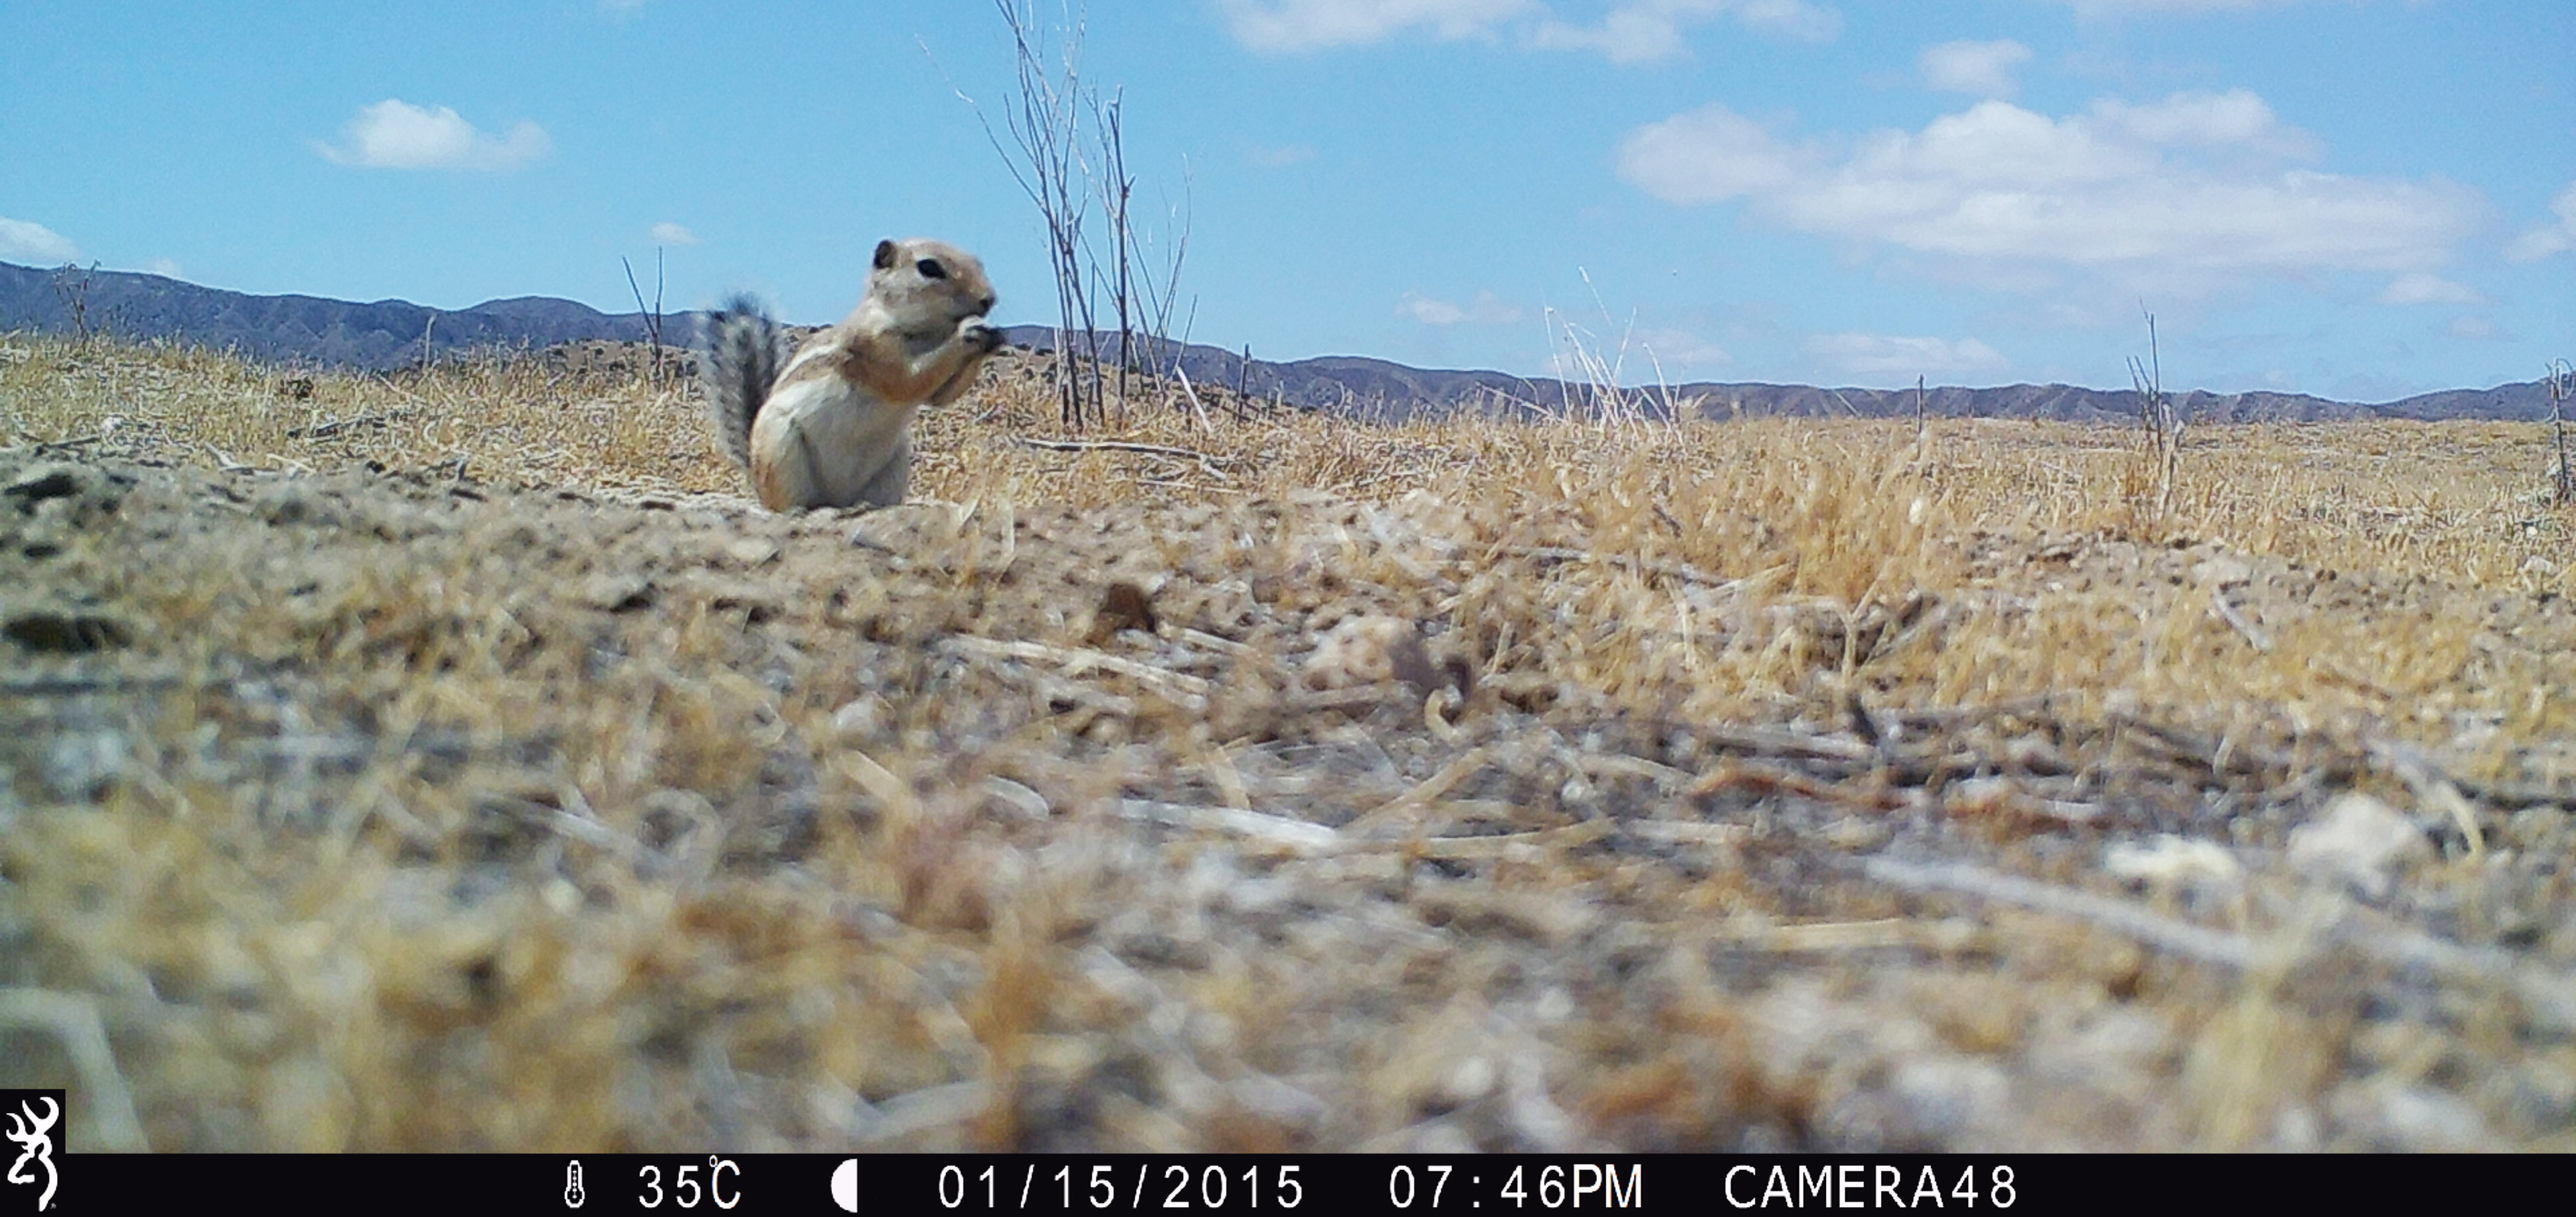 Image of a chipmunk taken by a camera trap